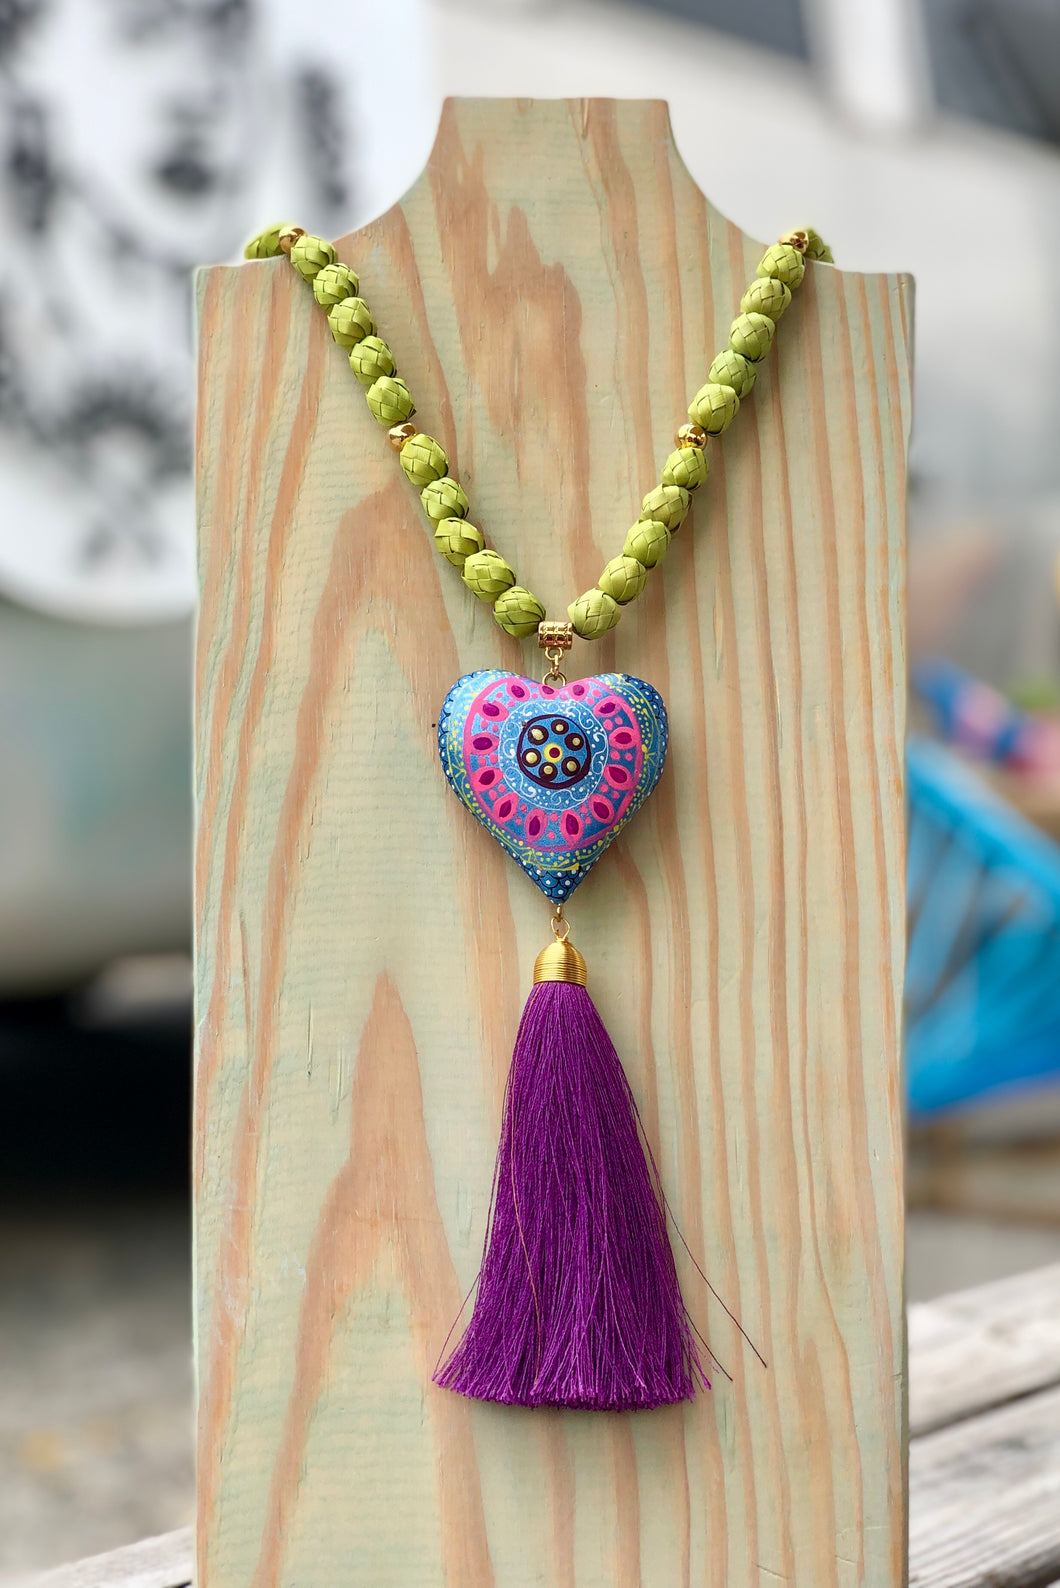 Citlali necklace